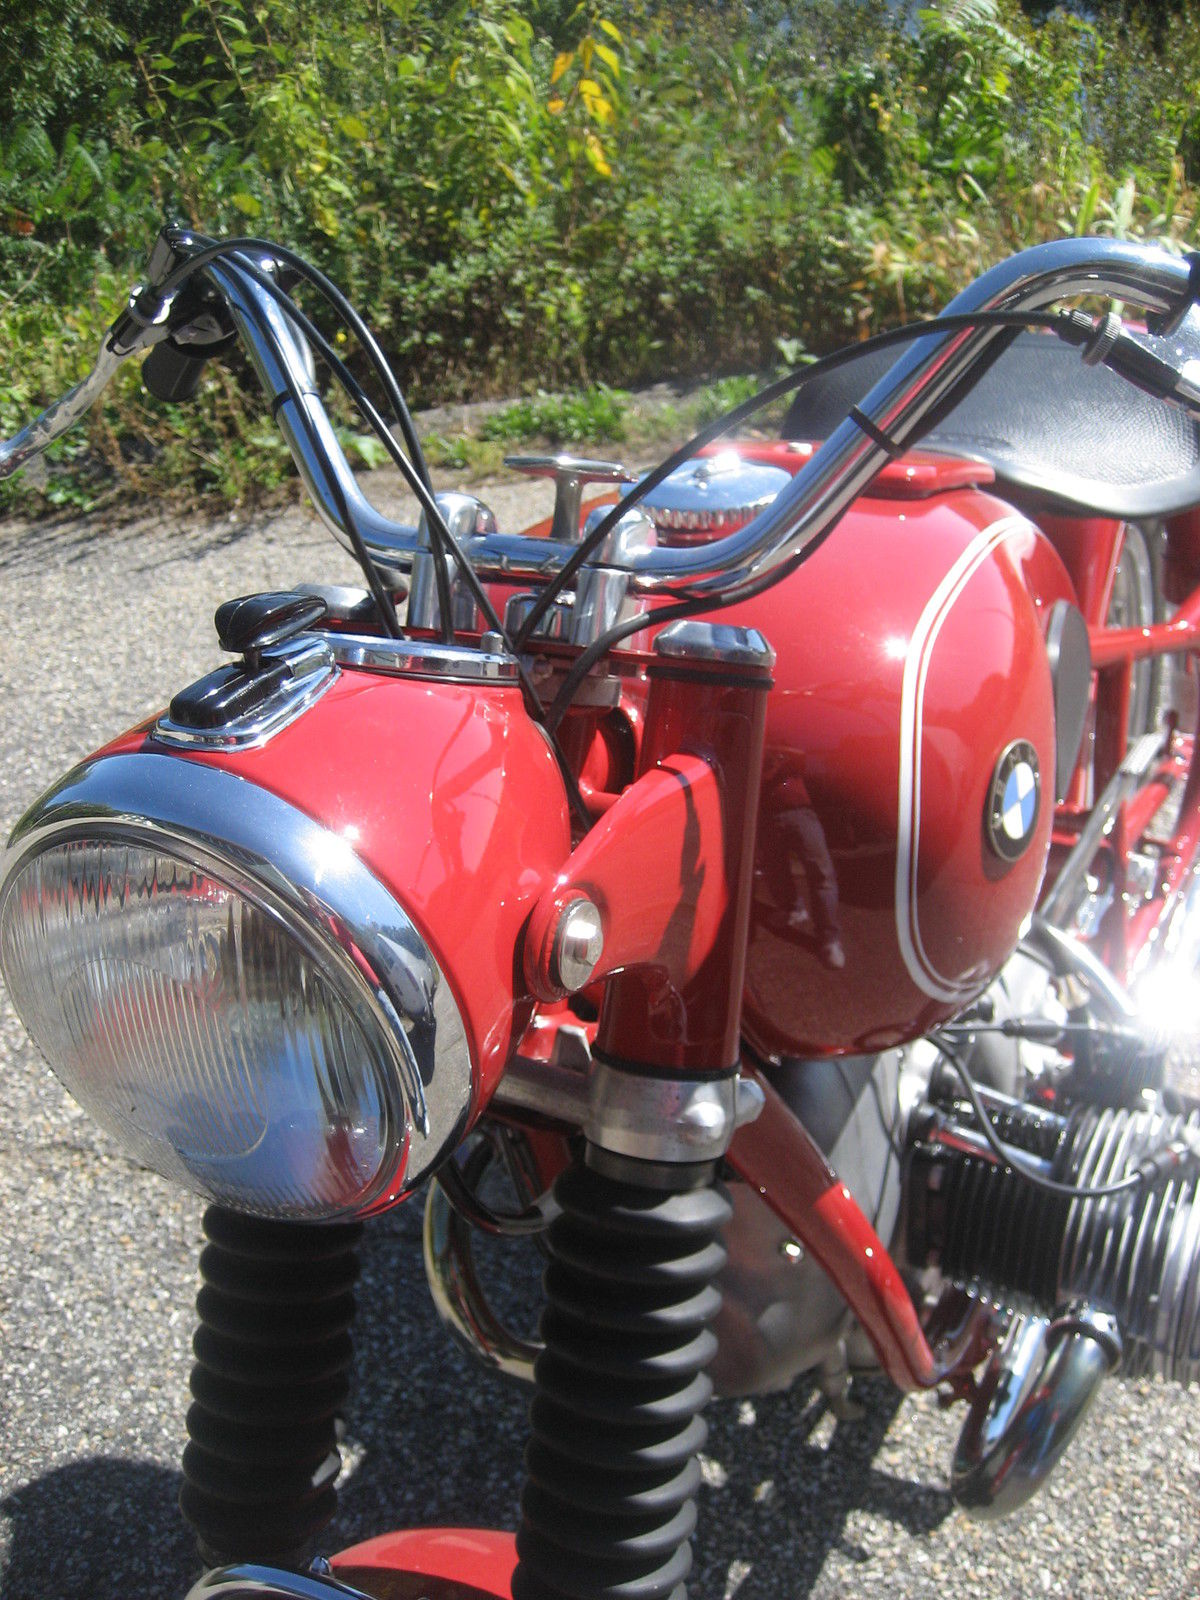 BMW R60 - 1969 - Headlight, Forks, Tank and Suspension.